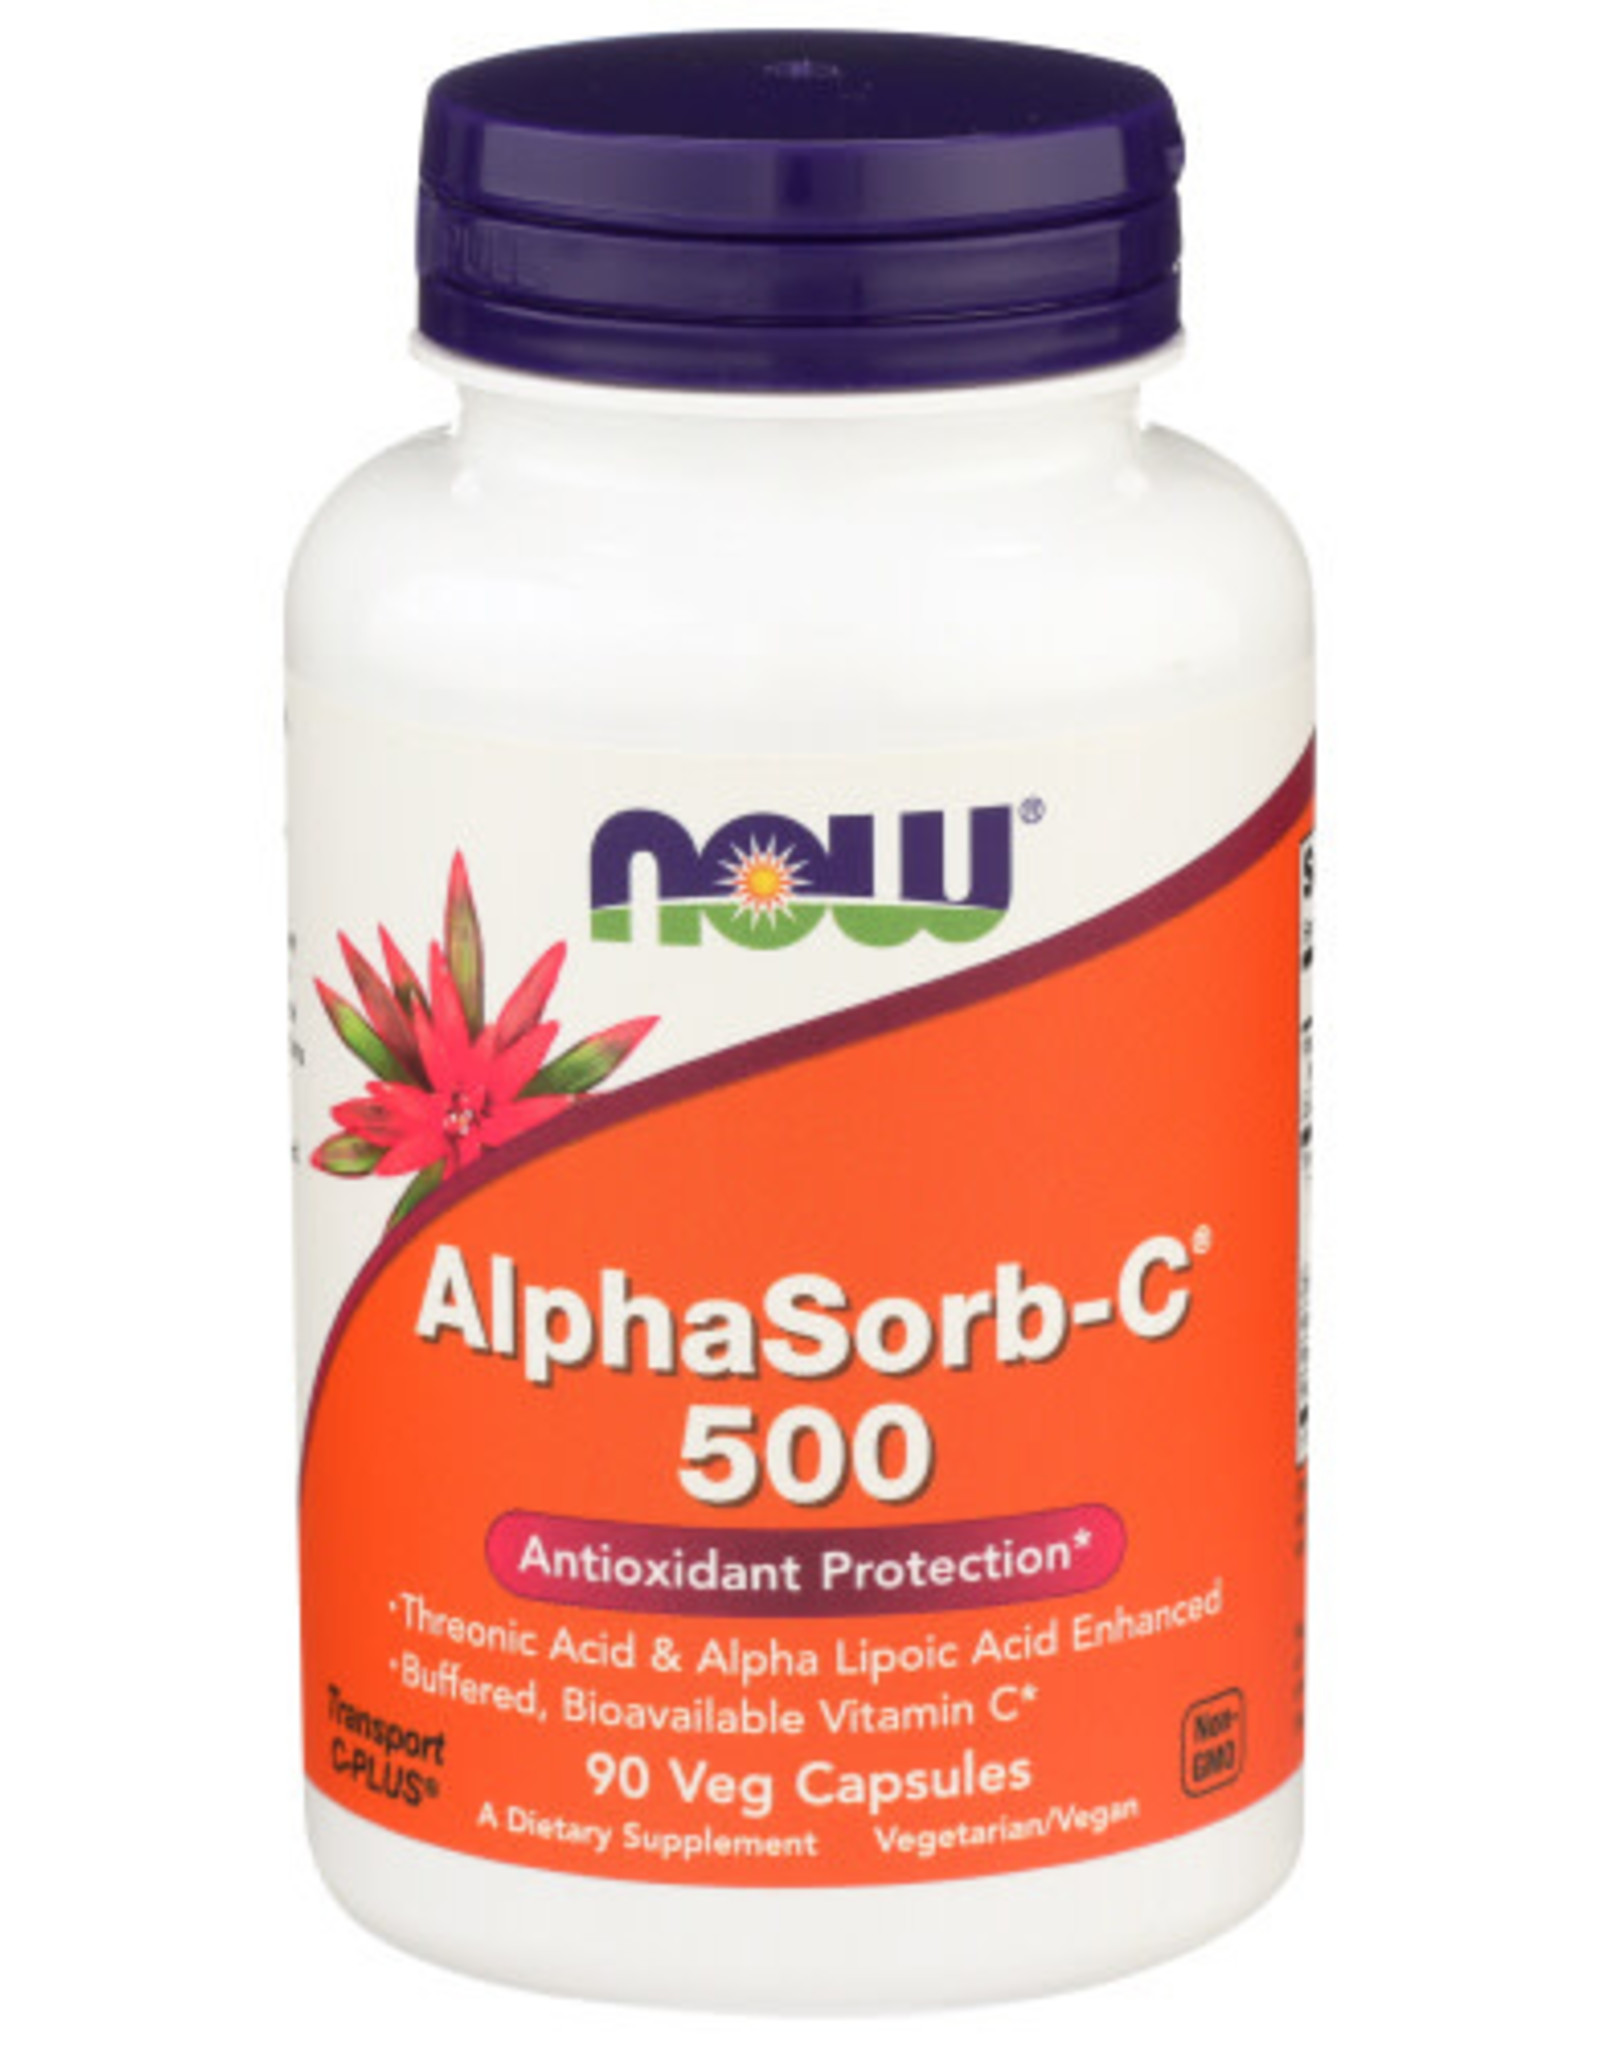 NOW FOODS NOW ALPHASORB-C 500 DIETARY SUPPLEMENT, 90 CAPSULES